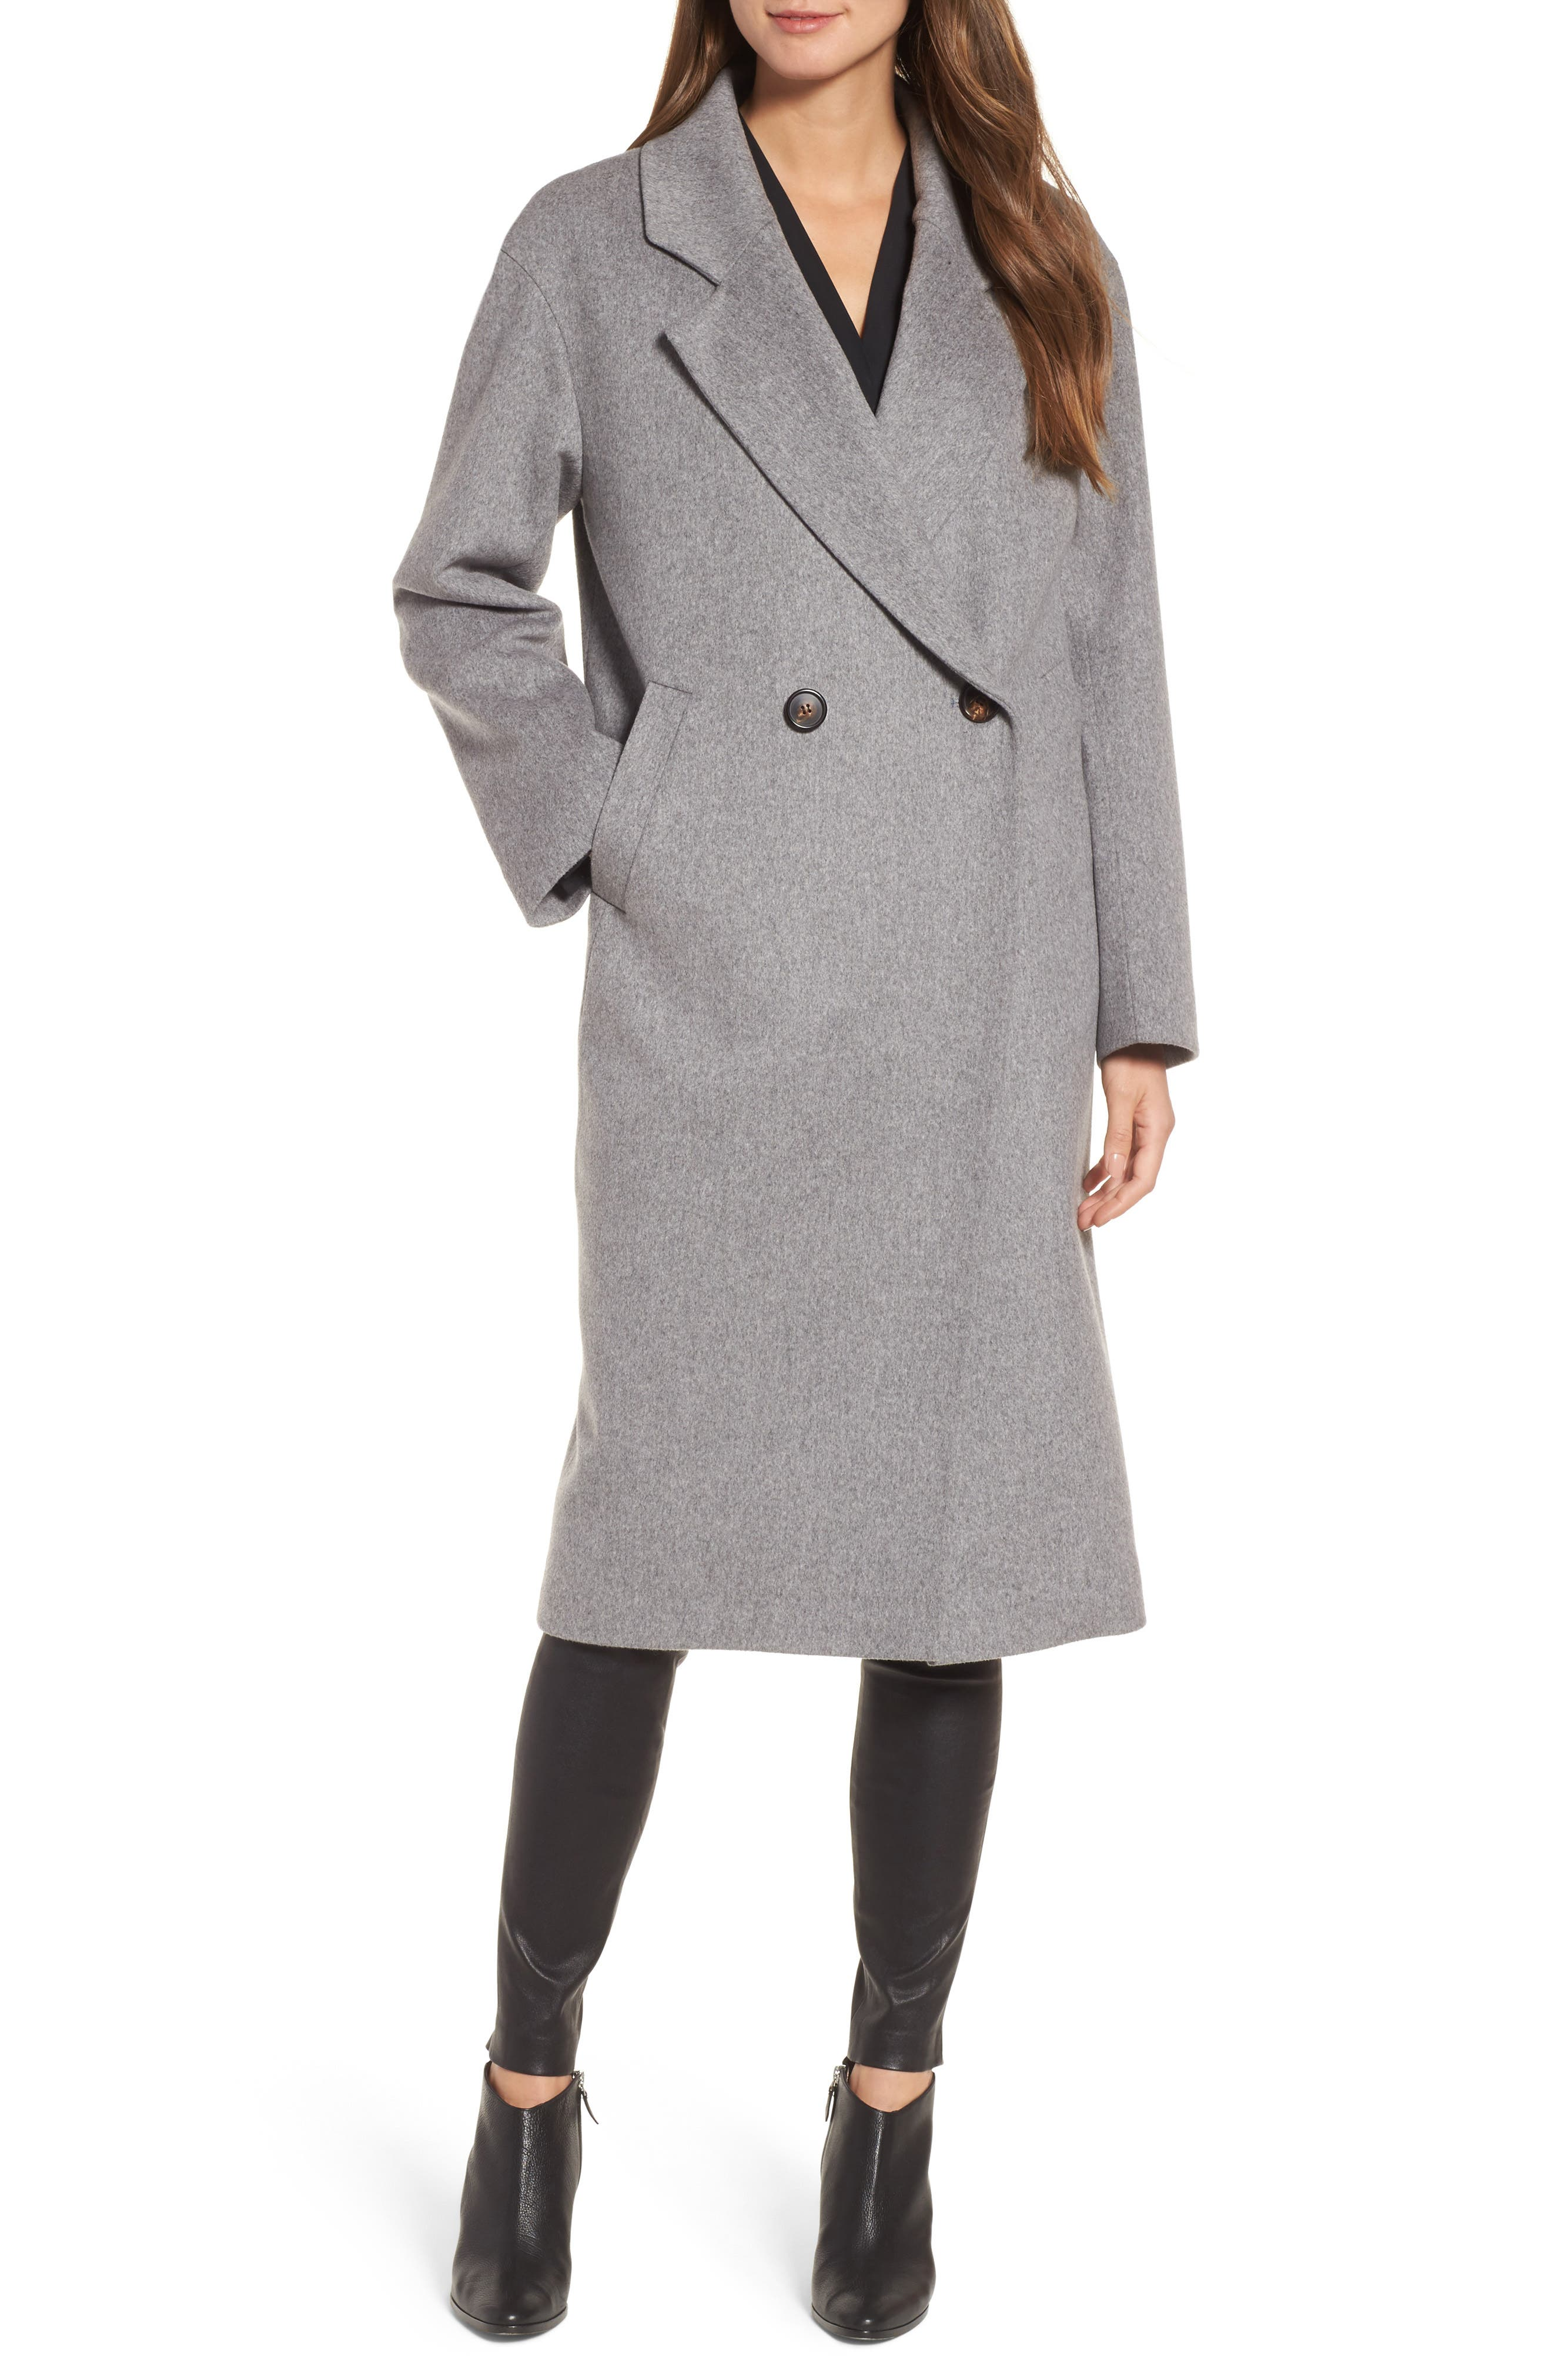 45 Loro Piana Wool Coat,                         Main,                         color, 080